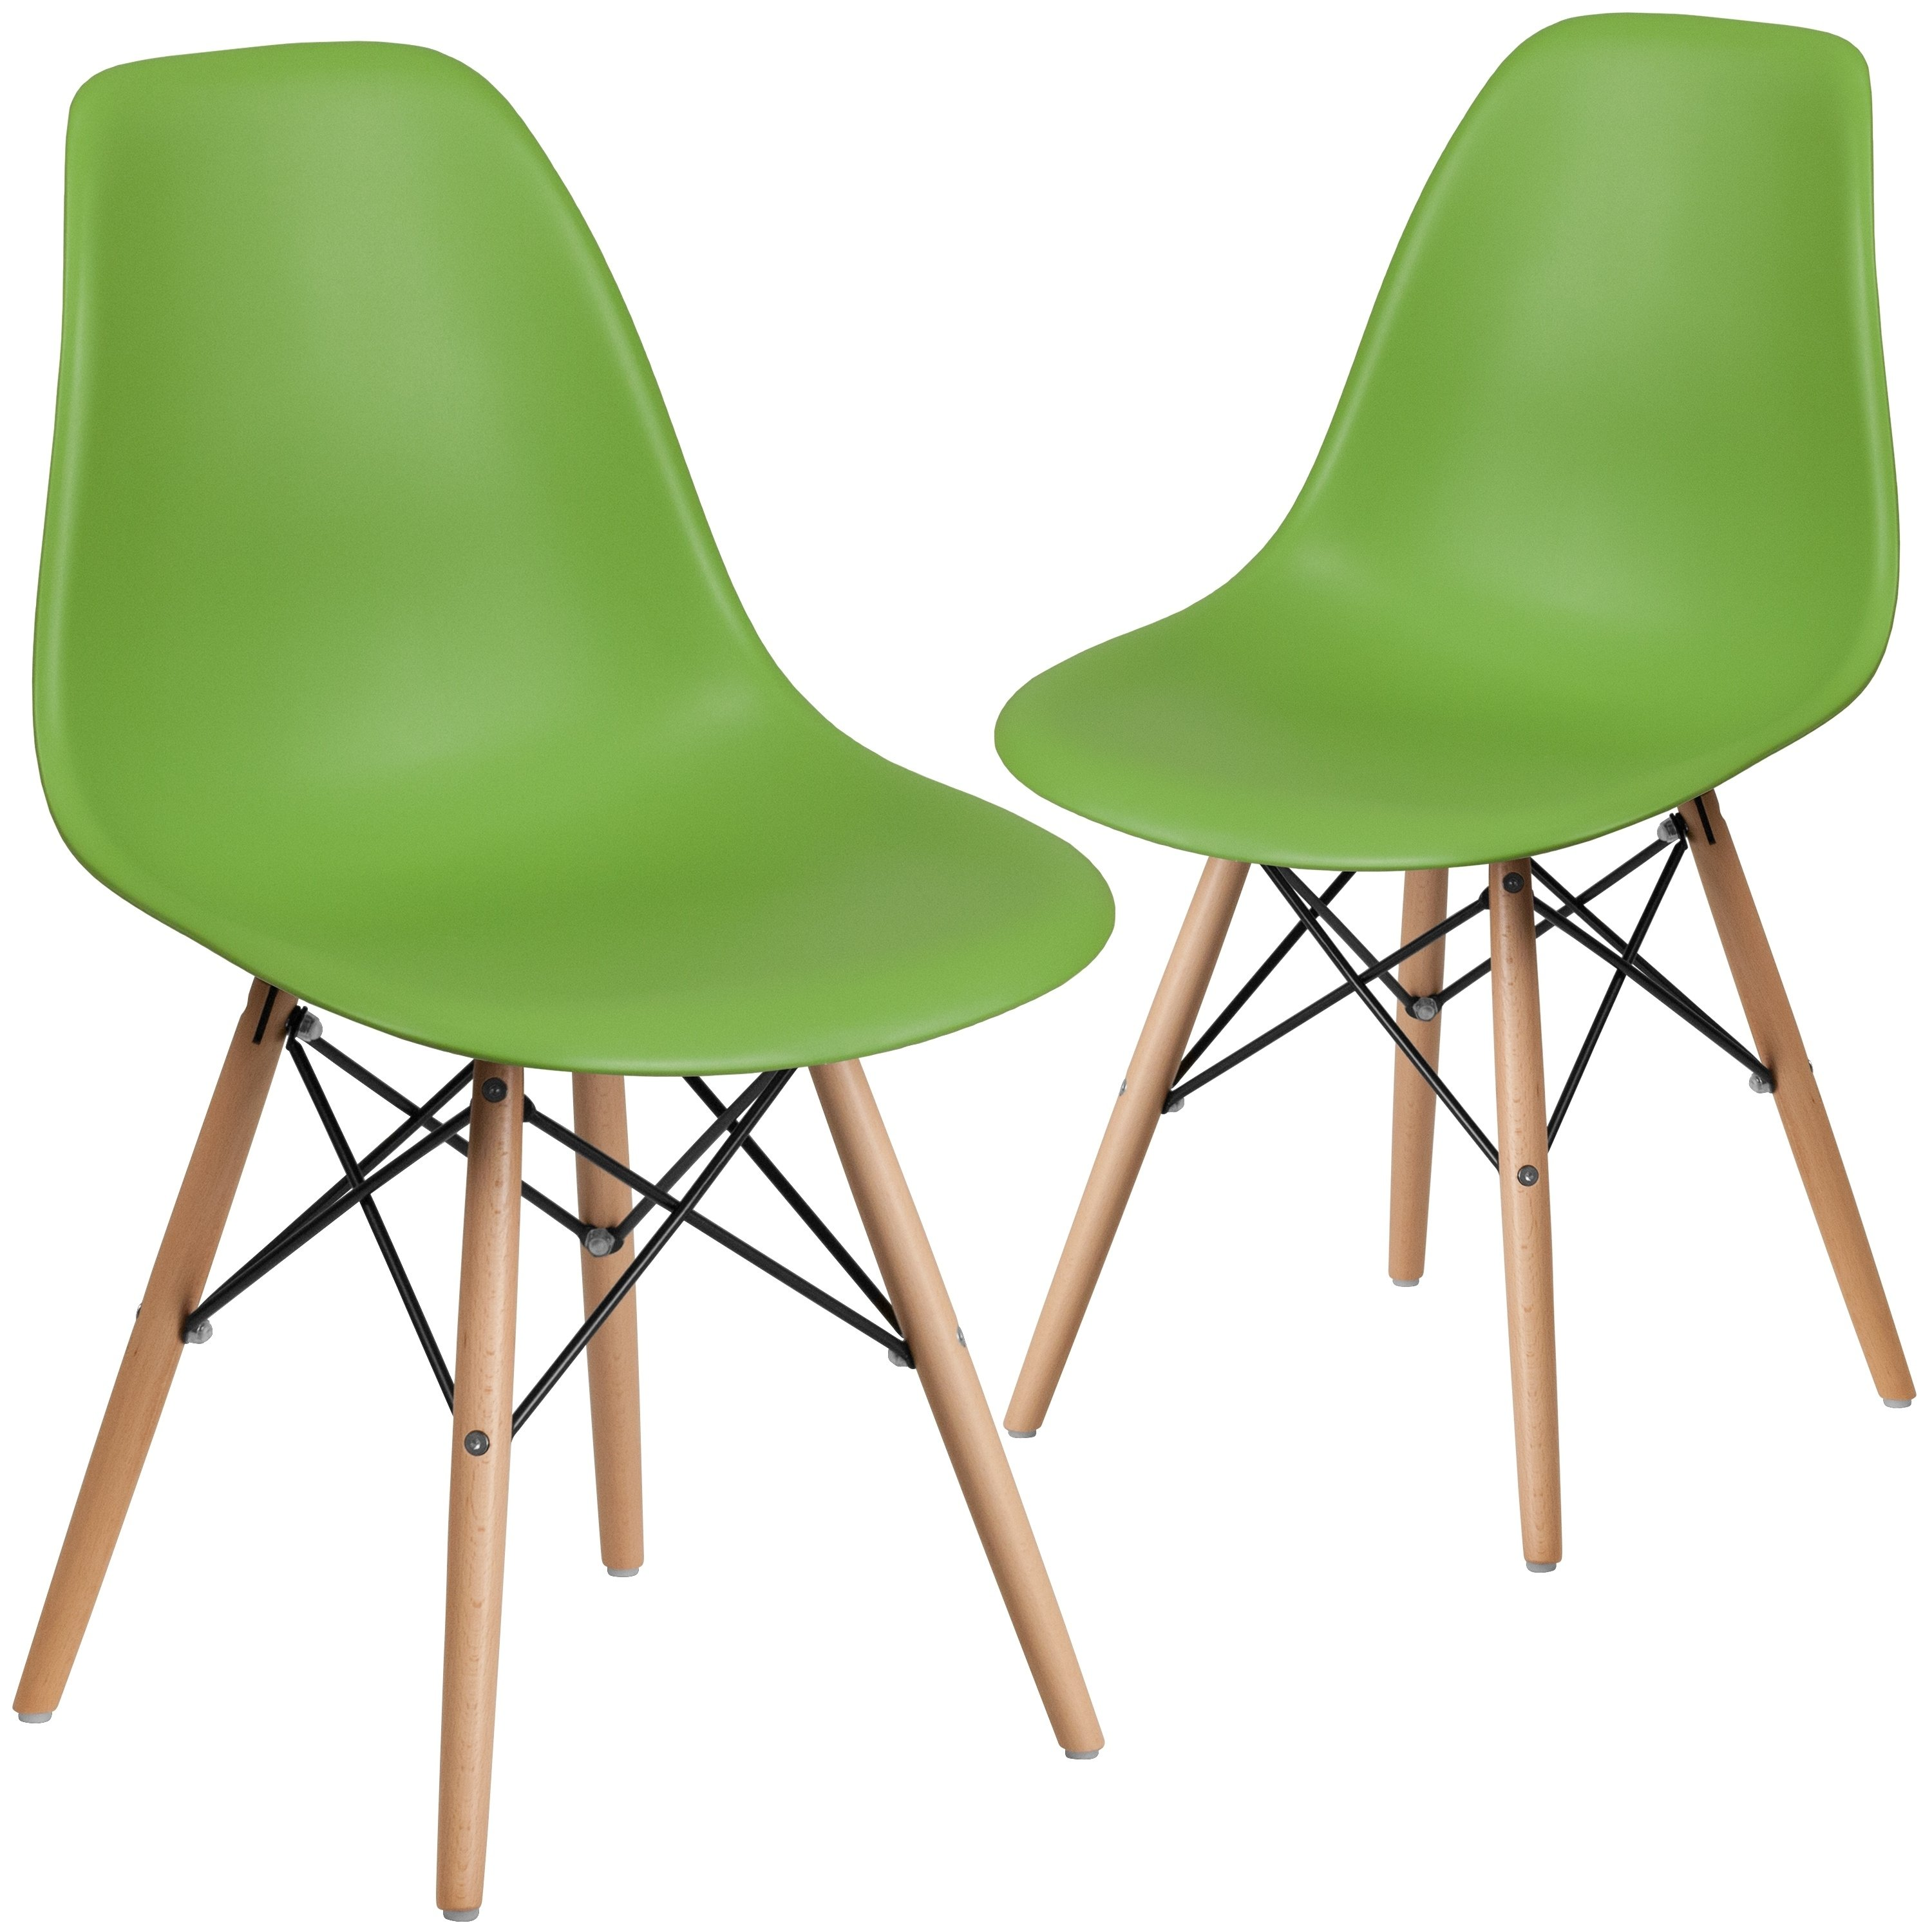 Lancaster Home 2 Pk. Elon Series Plastic Chair with Wood Base